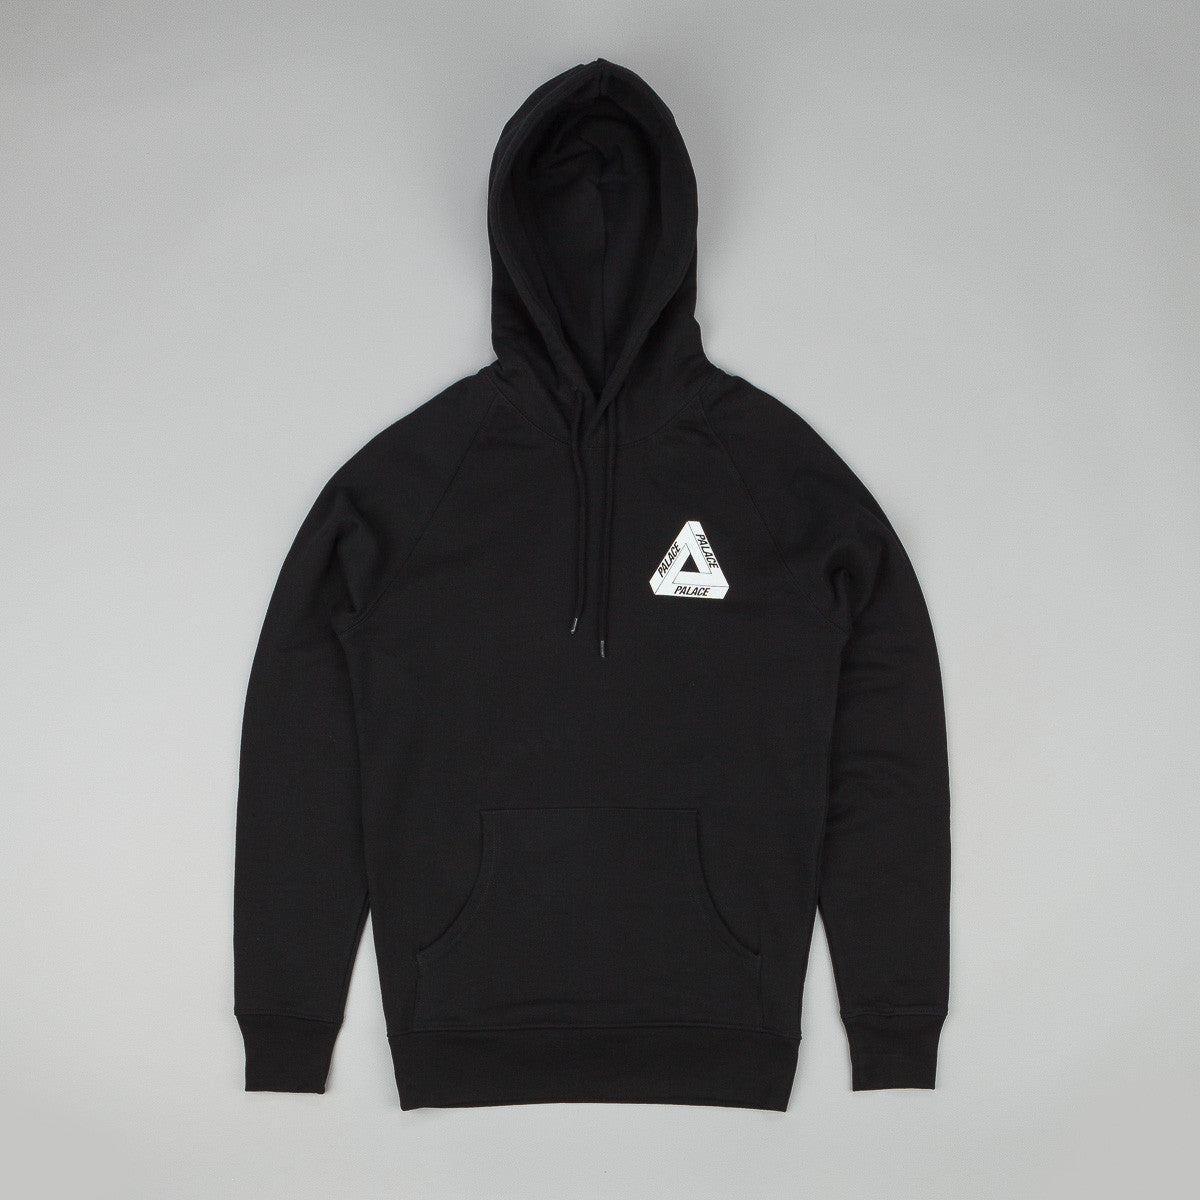 Palace Drury Brit Hooded Sweatshirt